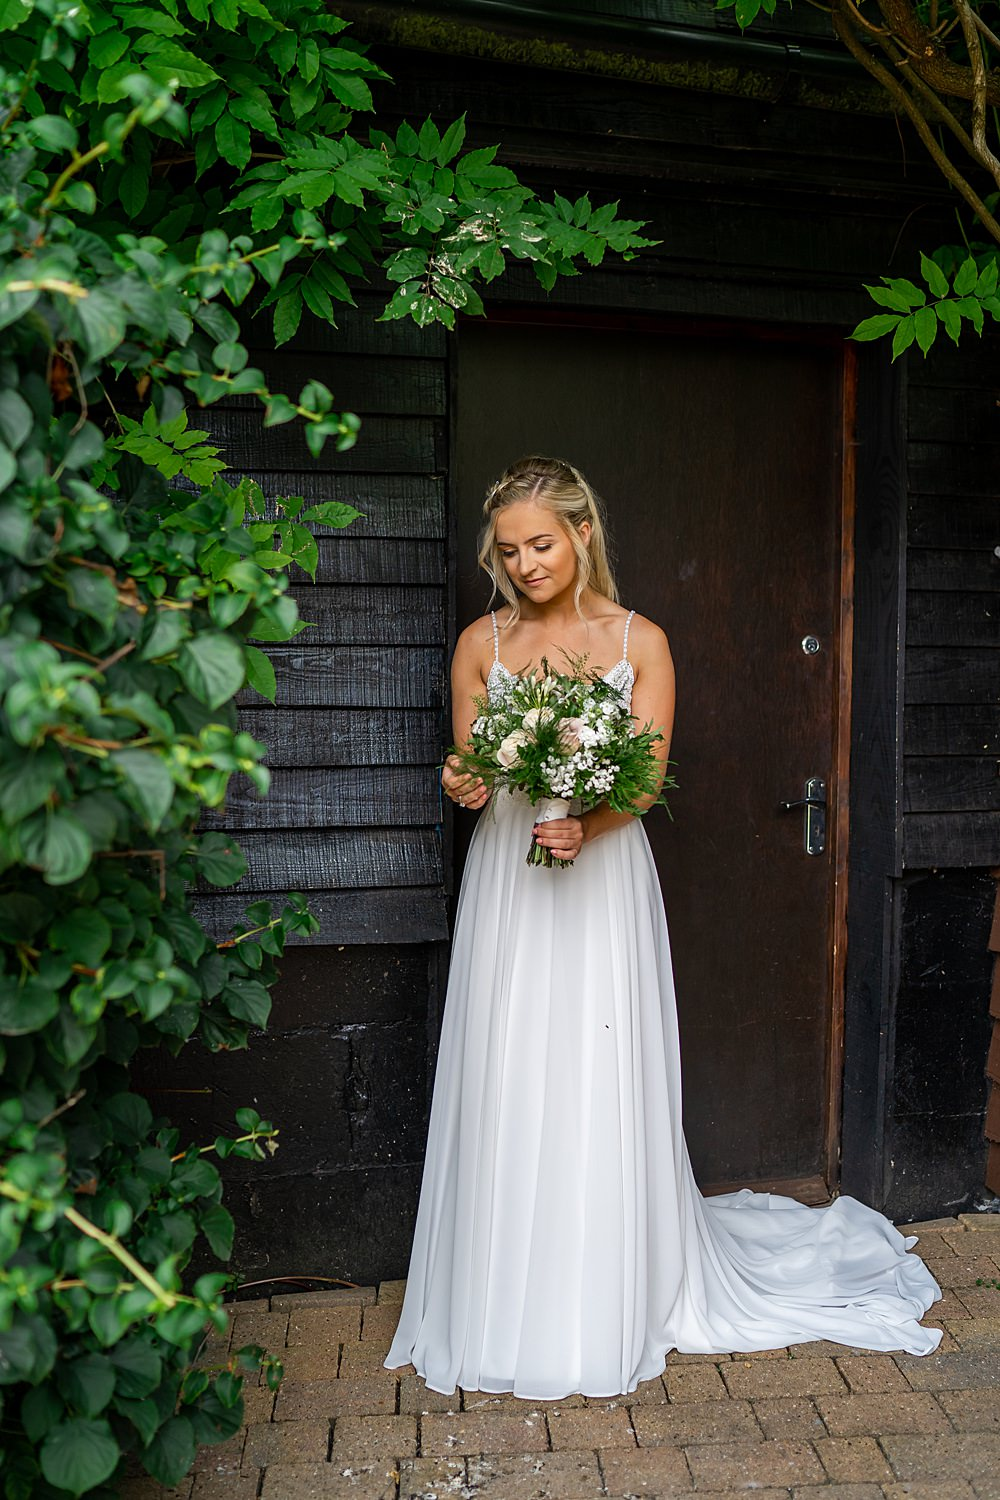 Dress Gown Bride Bridal Rebecca Ingram Flowing Straps Stylish Rustic Wedding Mia Photography